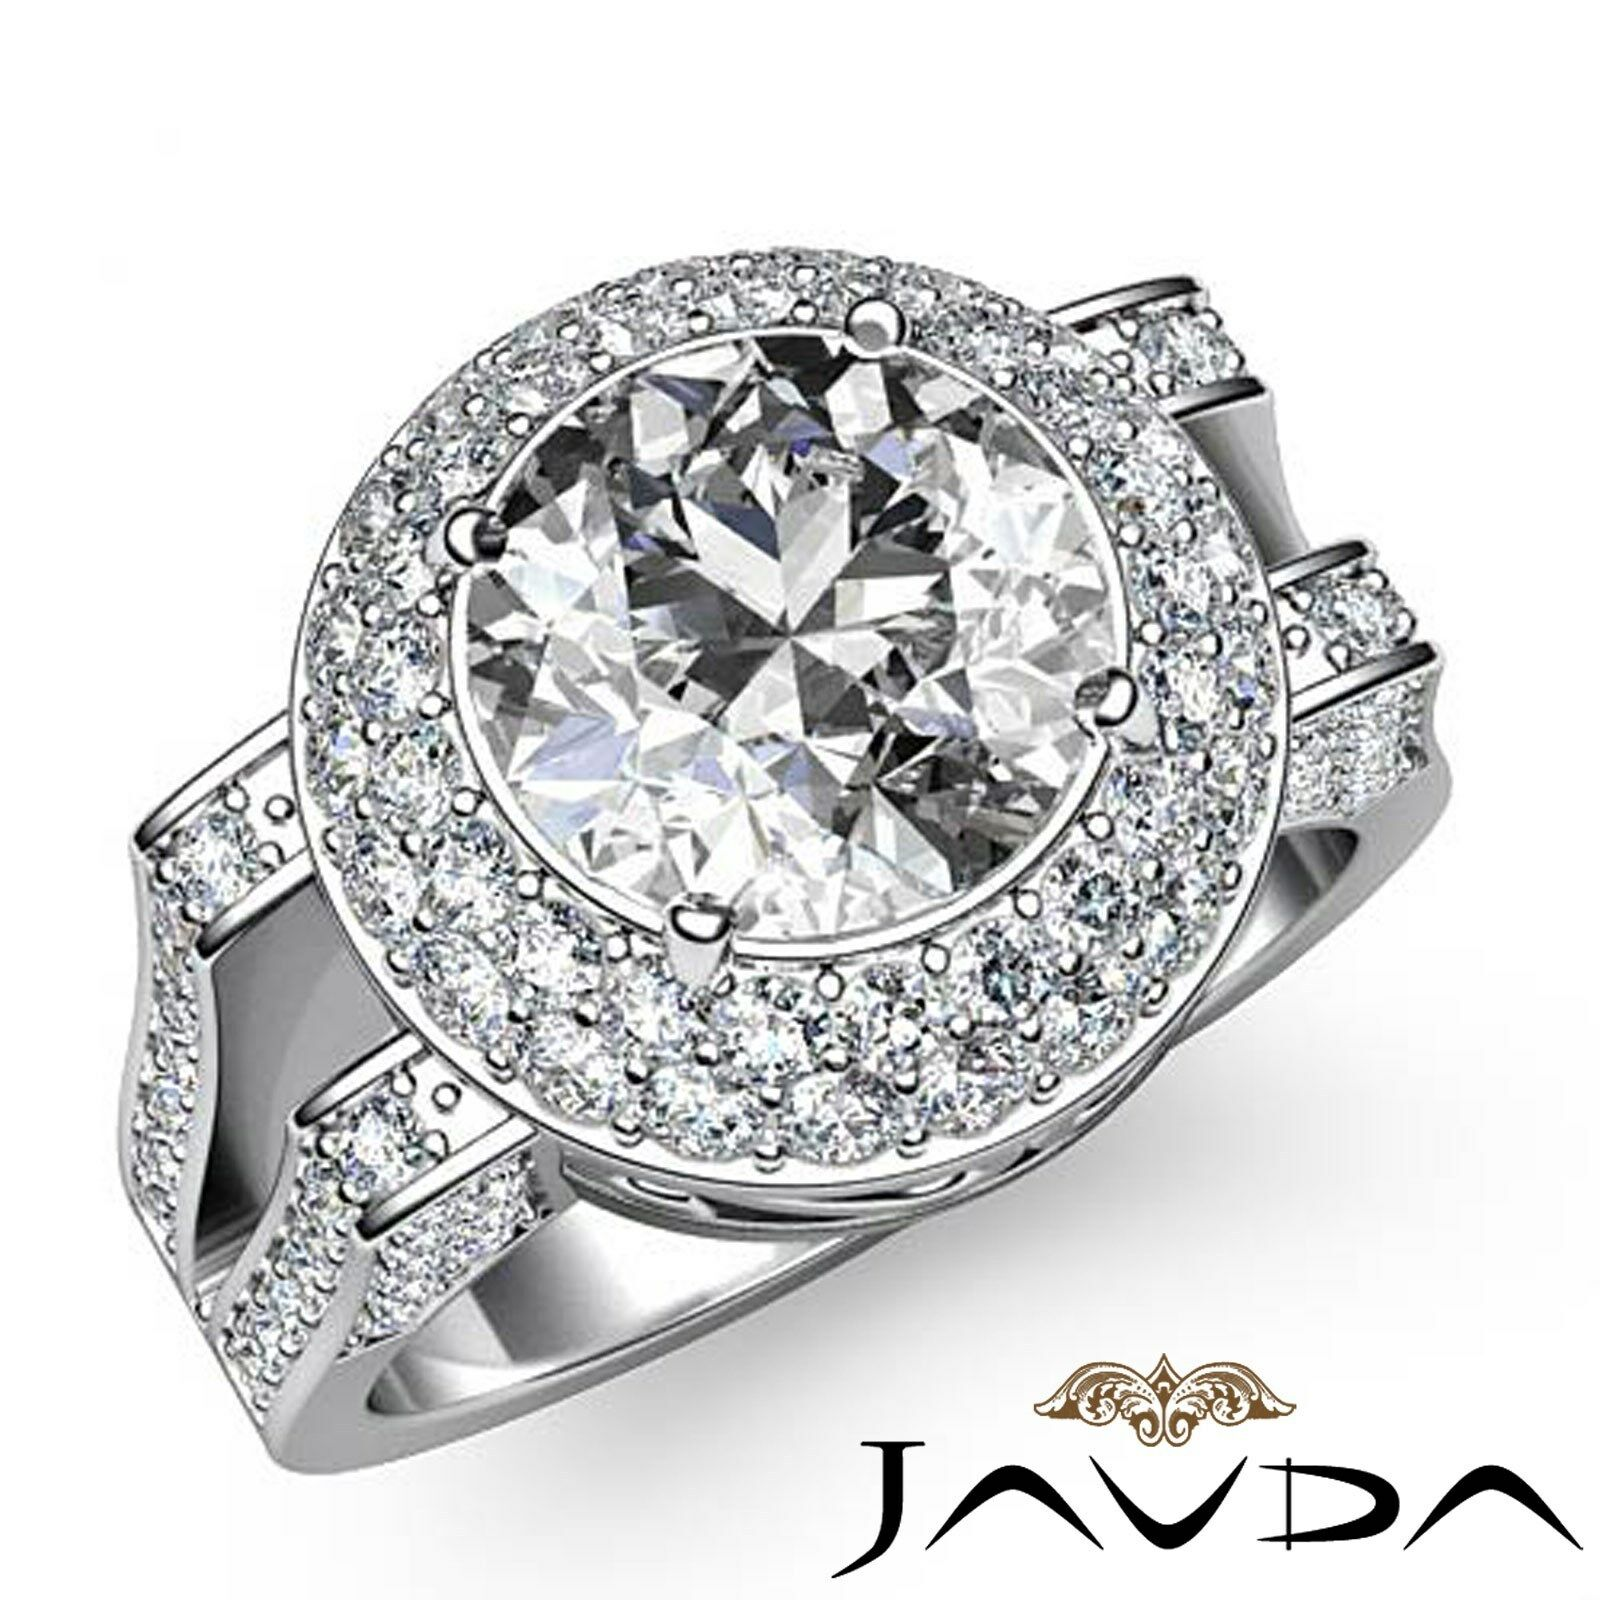 Double Halo Split Shank Round Diamond Engagement Filigree Ring GIA F VS2 2.6 Ct